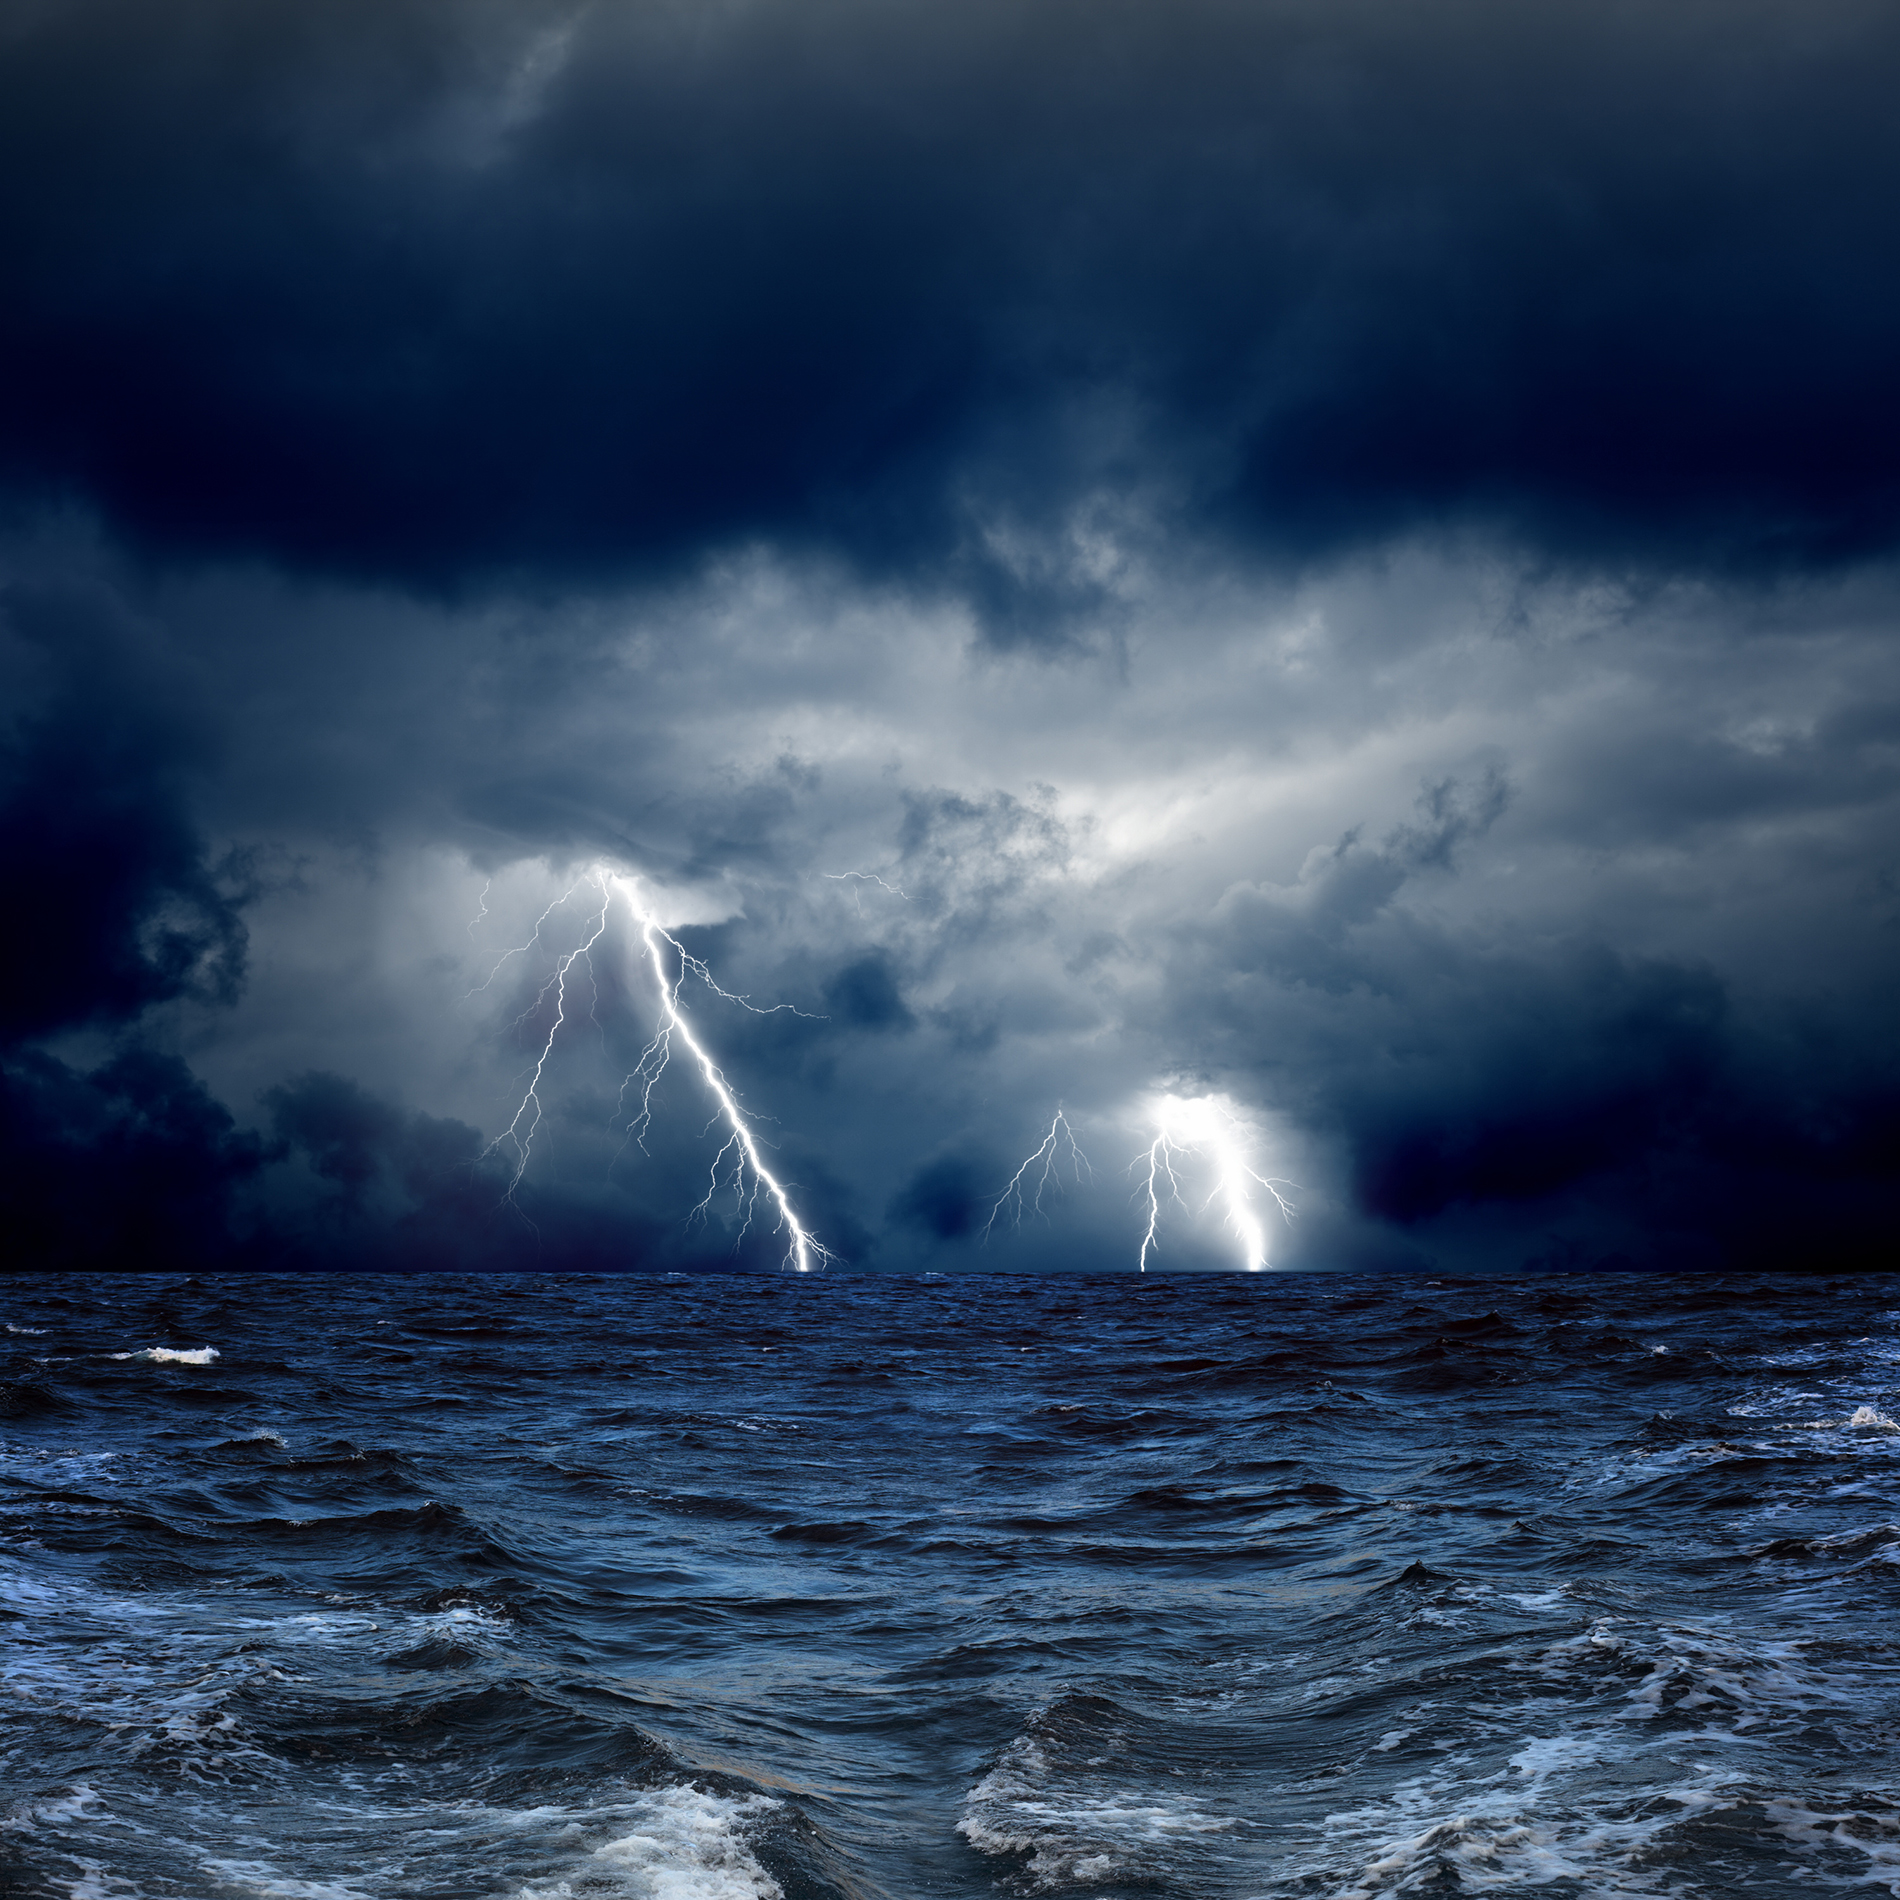 Sea storms and lightning 53468